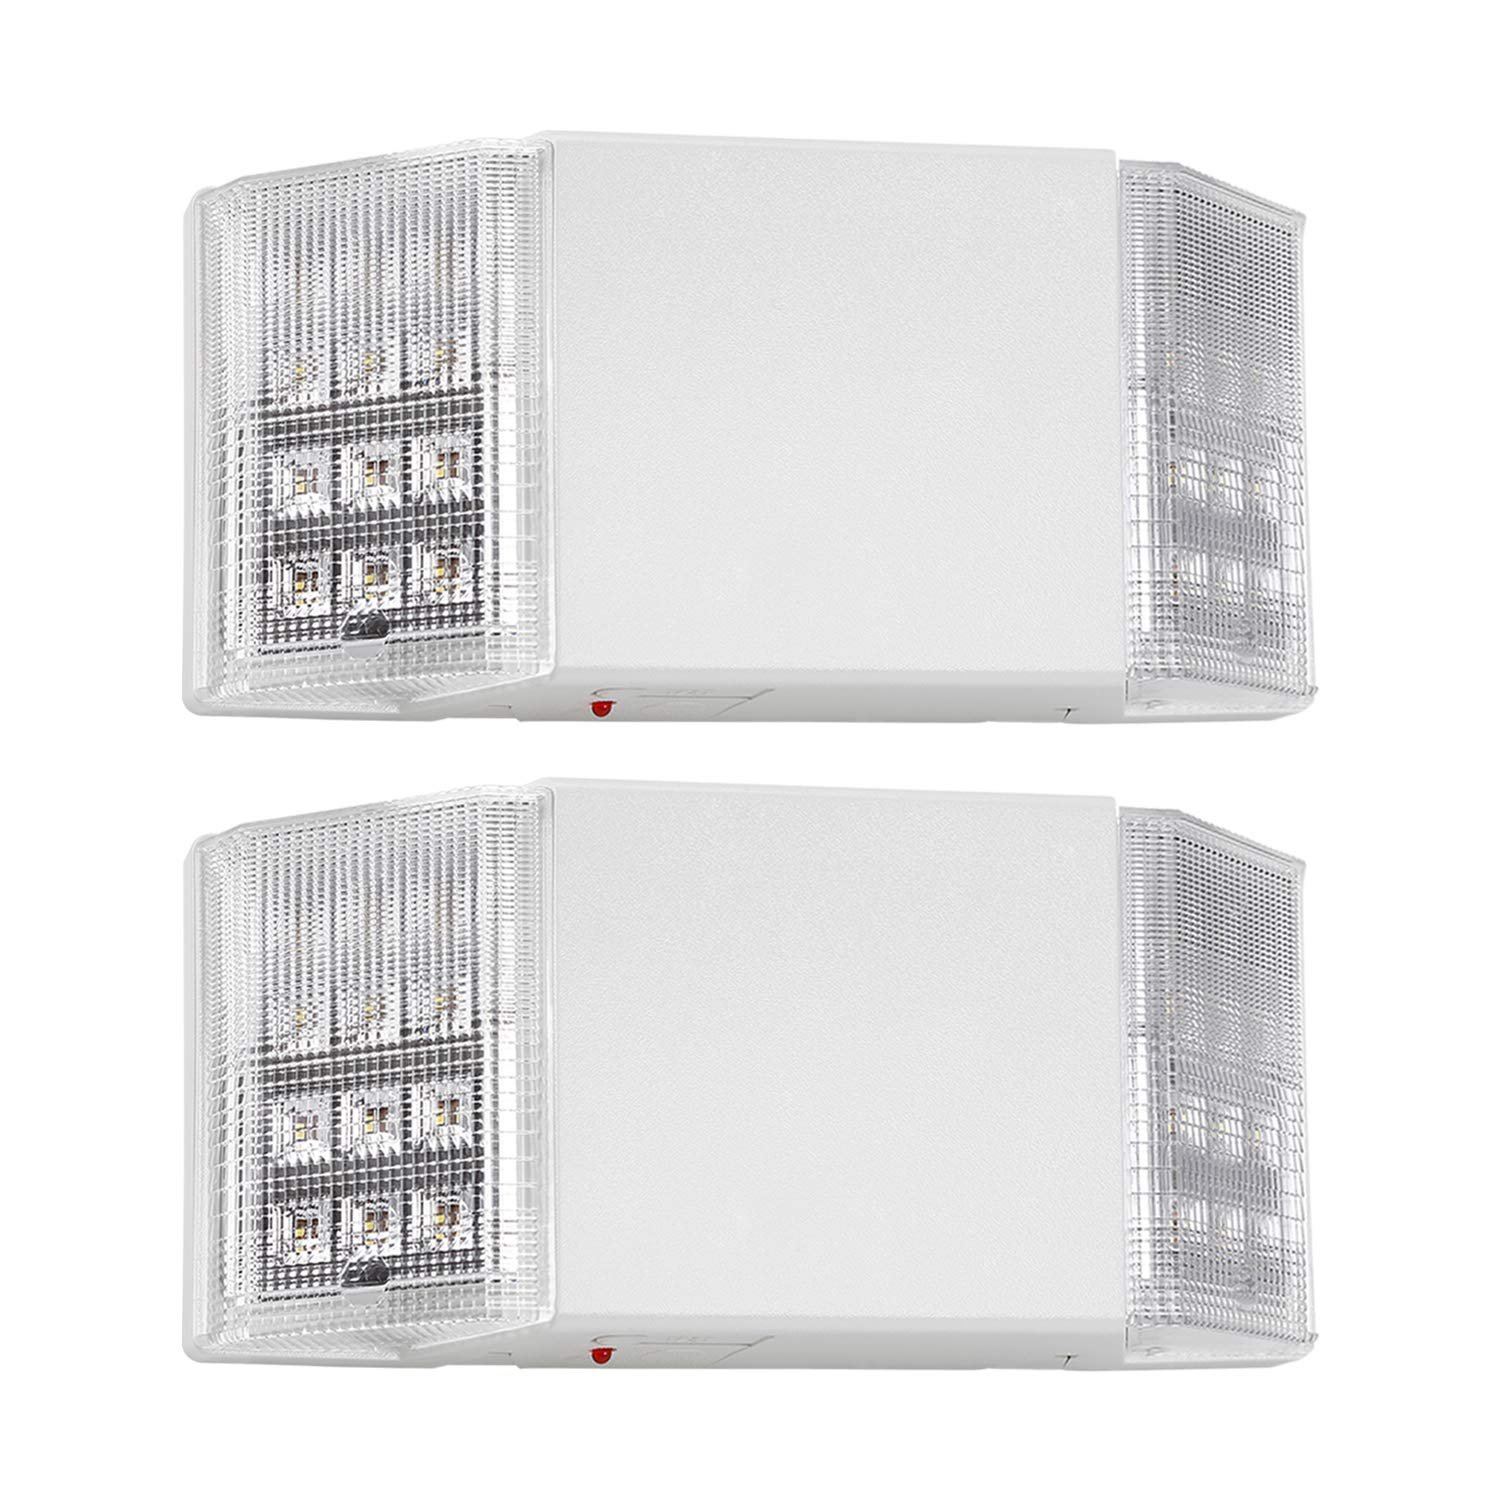 TORCHSTAR LED Emergency Exit Light with Battery Backup UL-Listed, 120V/277V Input, High Light Output for Hallways/Corridors/Stairways, Pack of 2 by TORCHSTAR